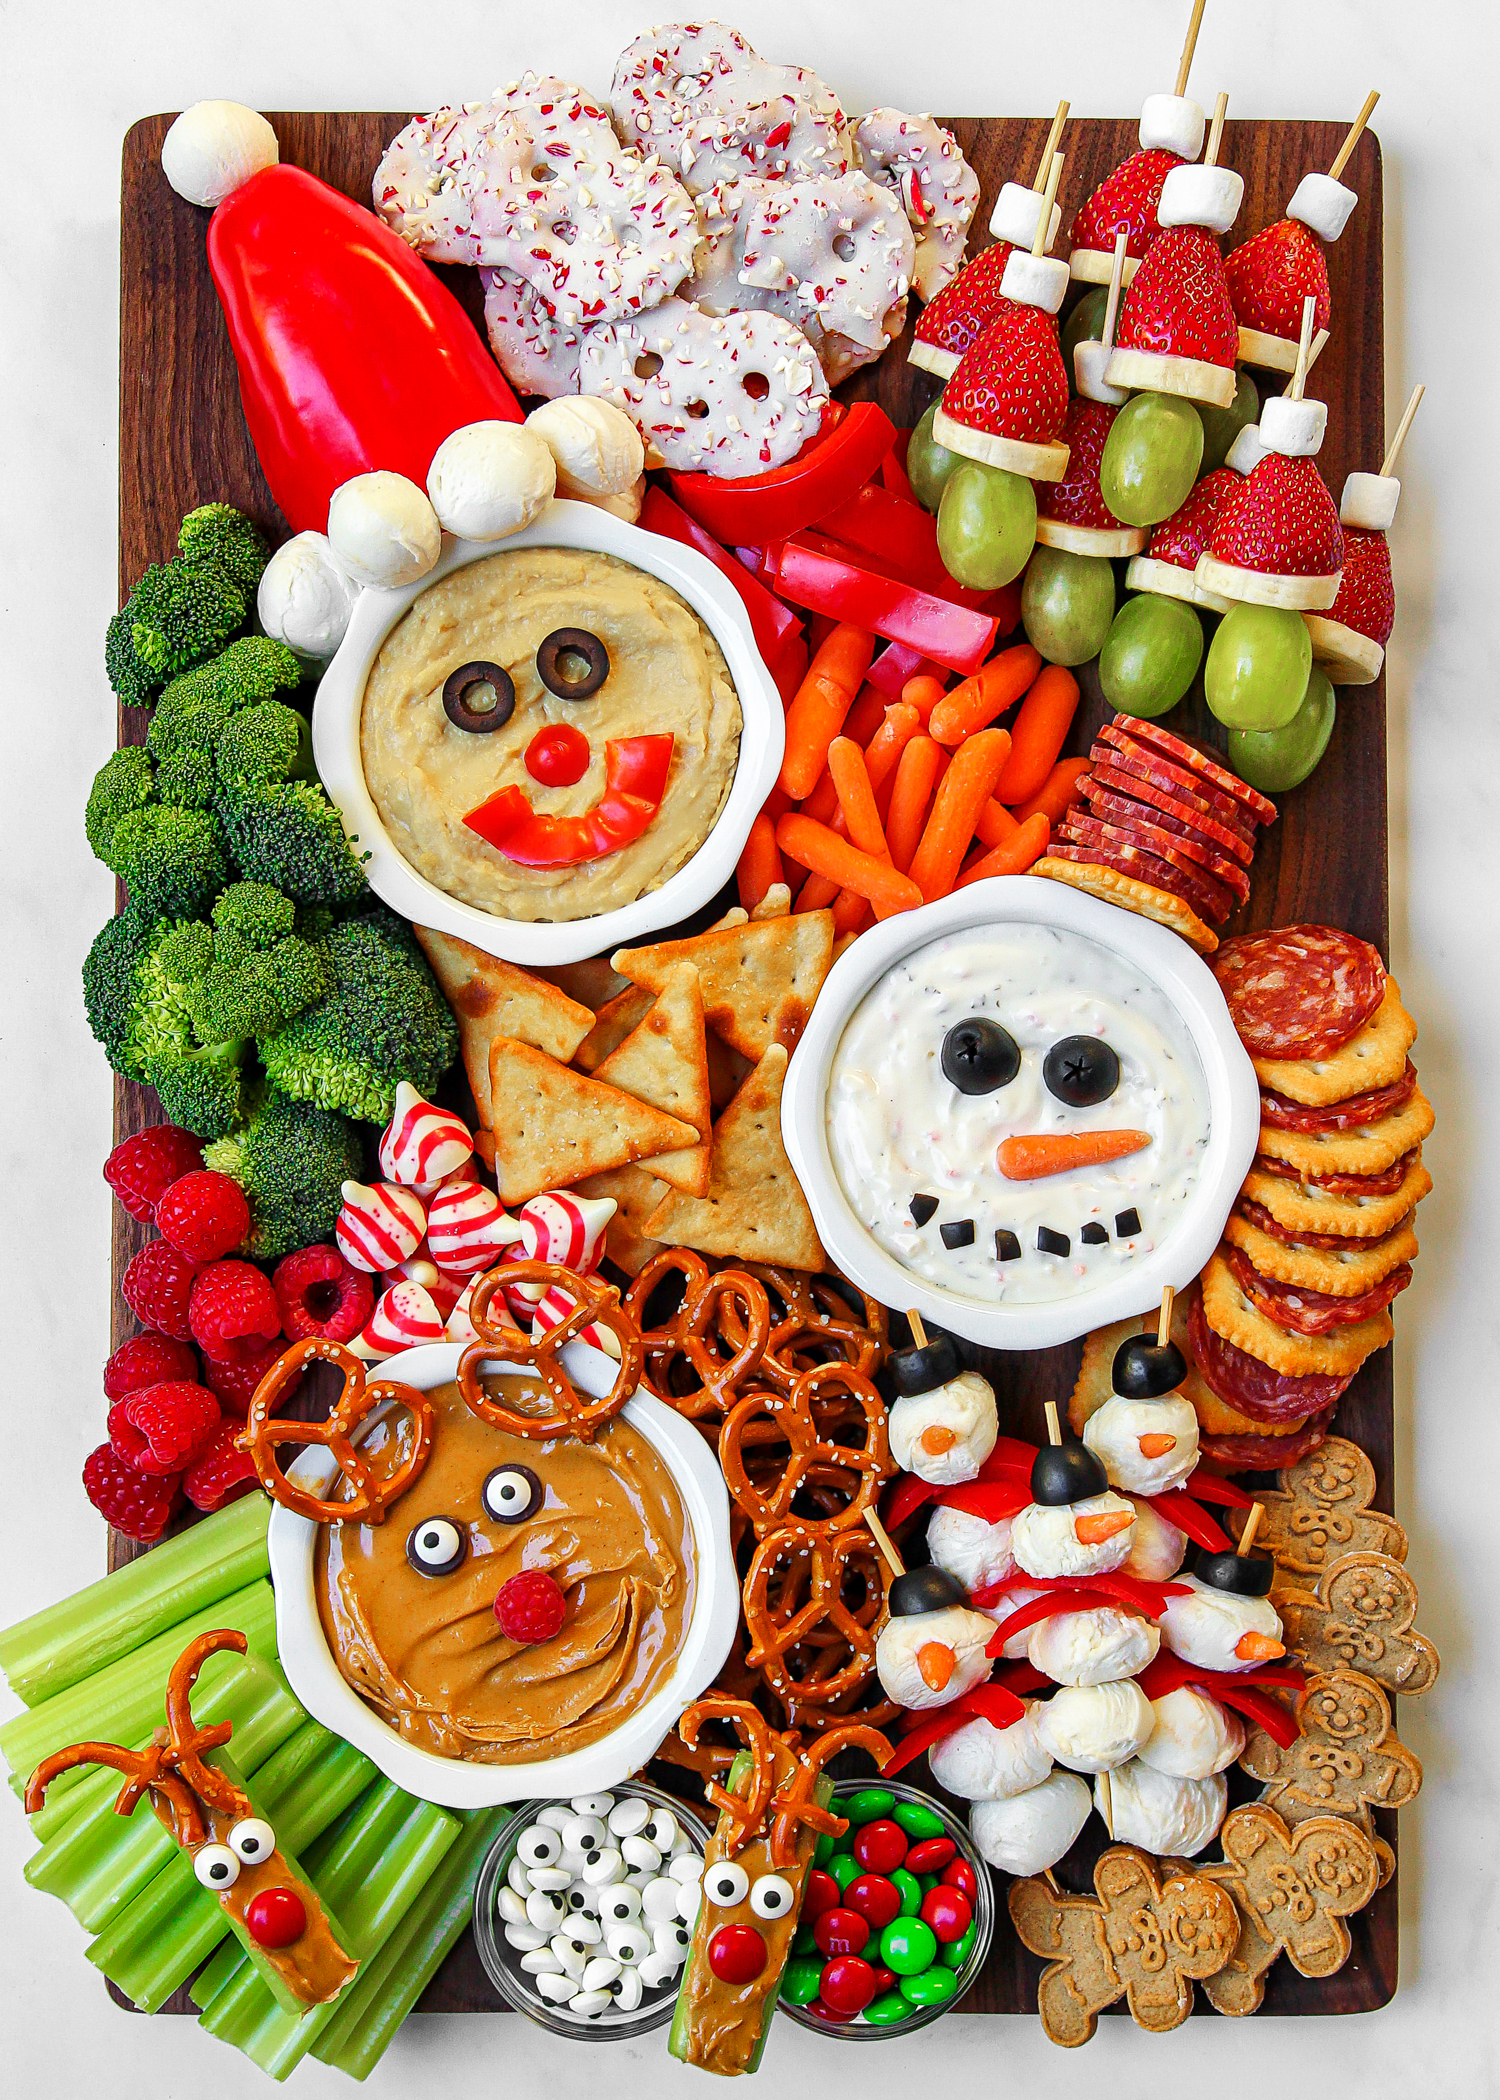 Christmas Candy Charcuterie Snack Board #charcuterie #charcuterieboard #candyboard #snackboard #christmascharcuterie #christmasappetizers #christmasrecipes #partyfood #christmaspartyfood